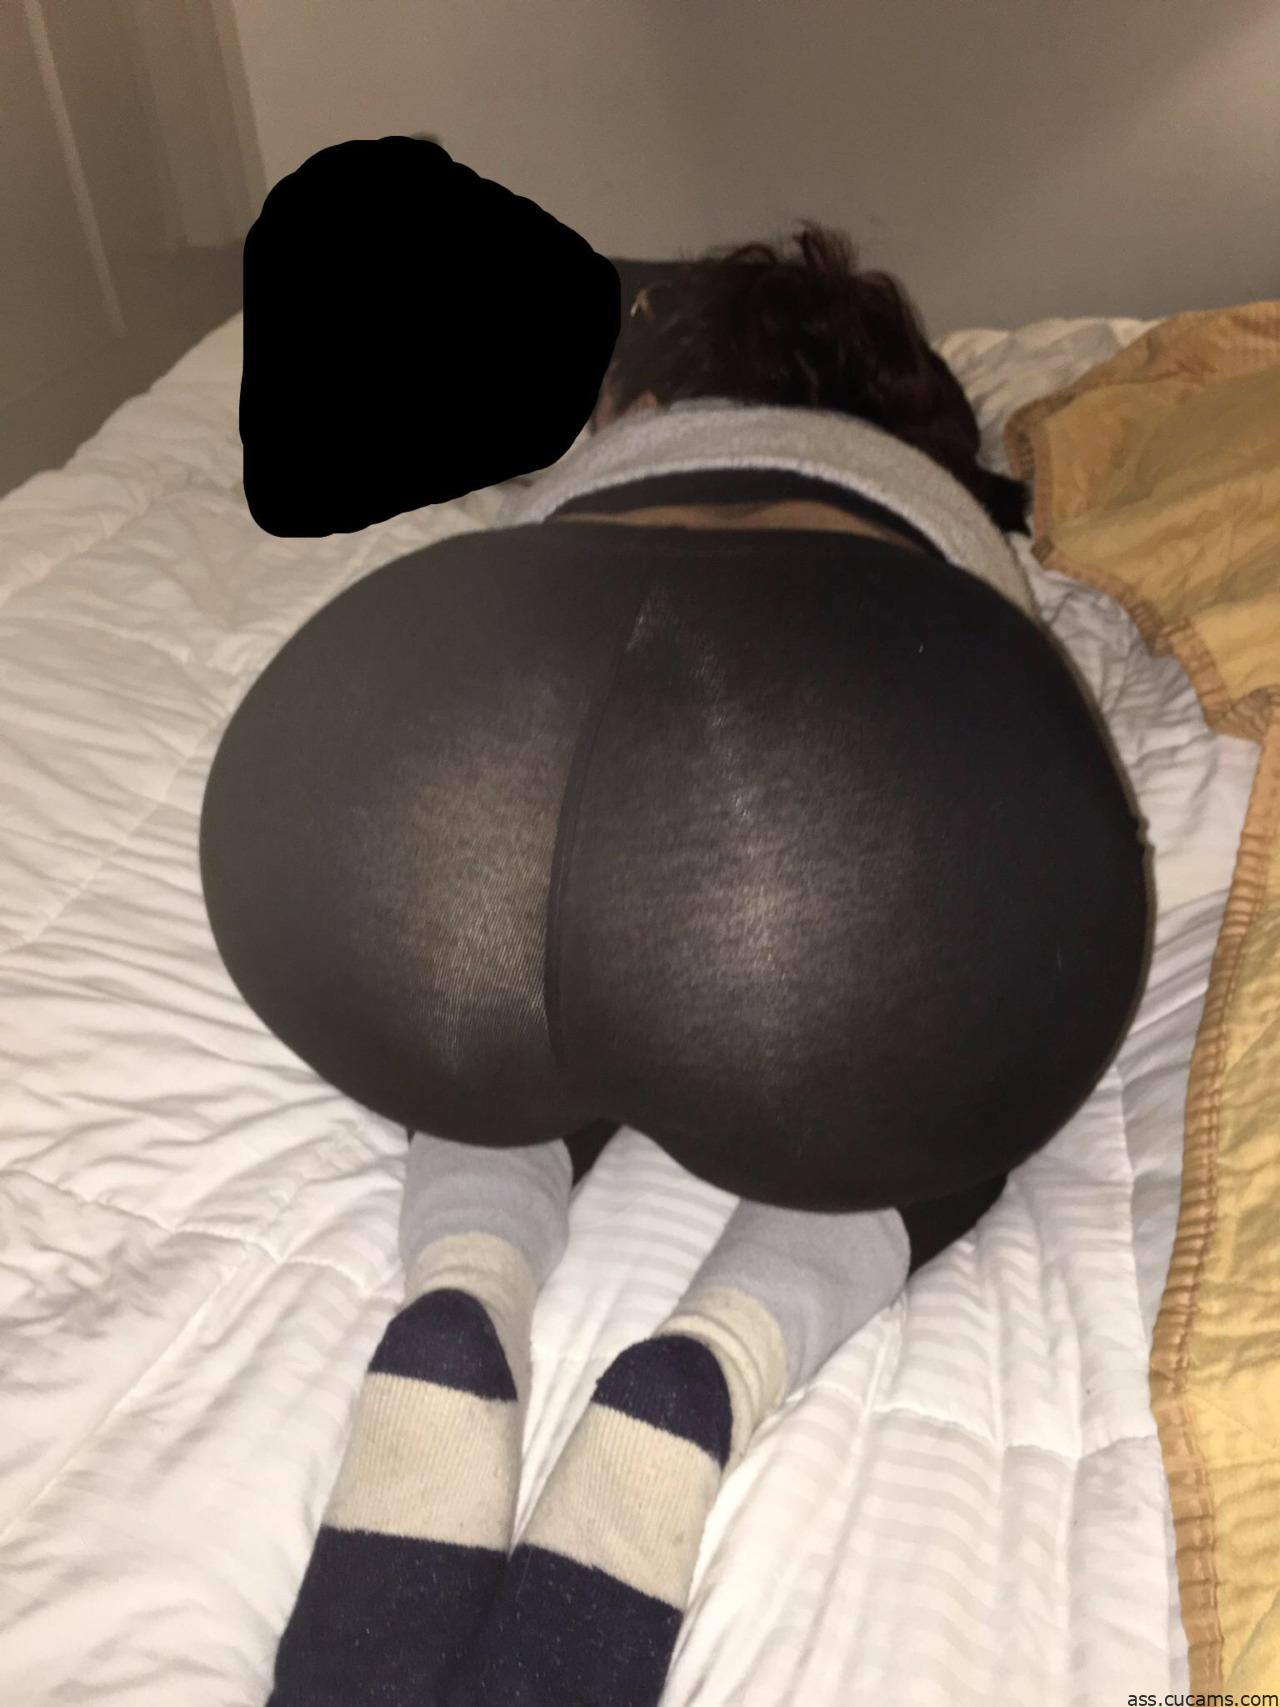 Ass Yoga Sniffing by ass.cucams.com